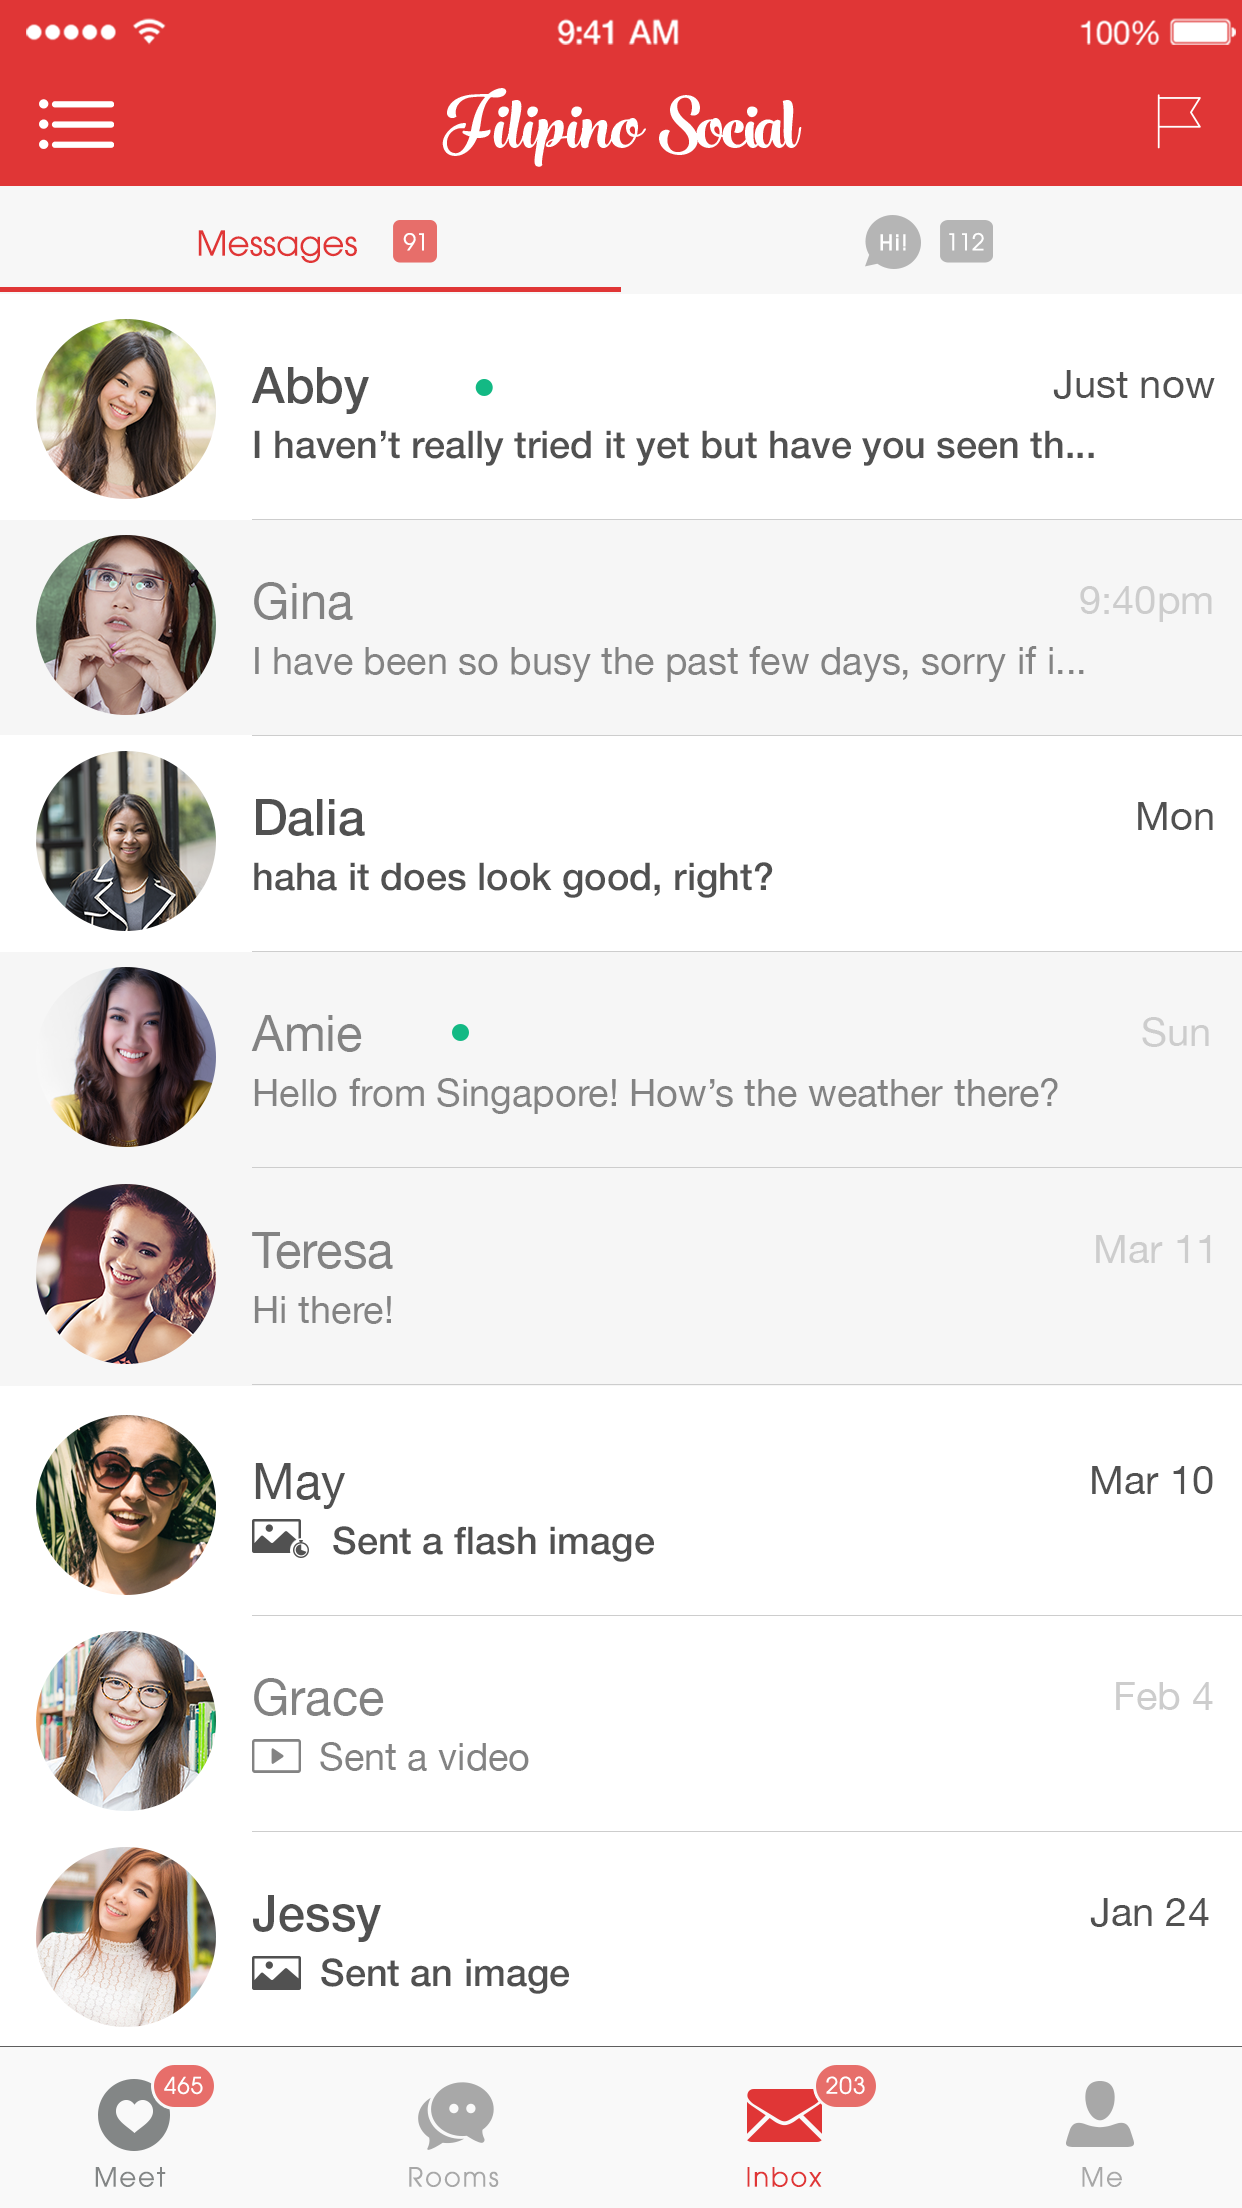 Pinoy chat website